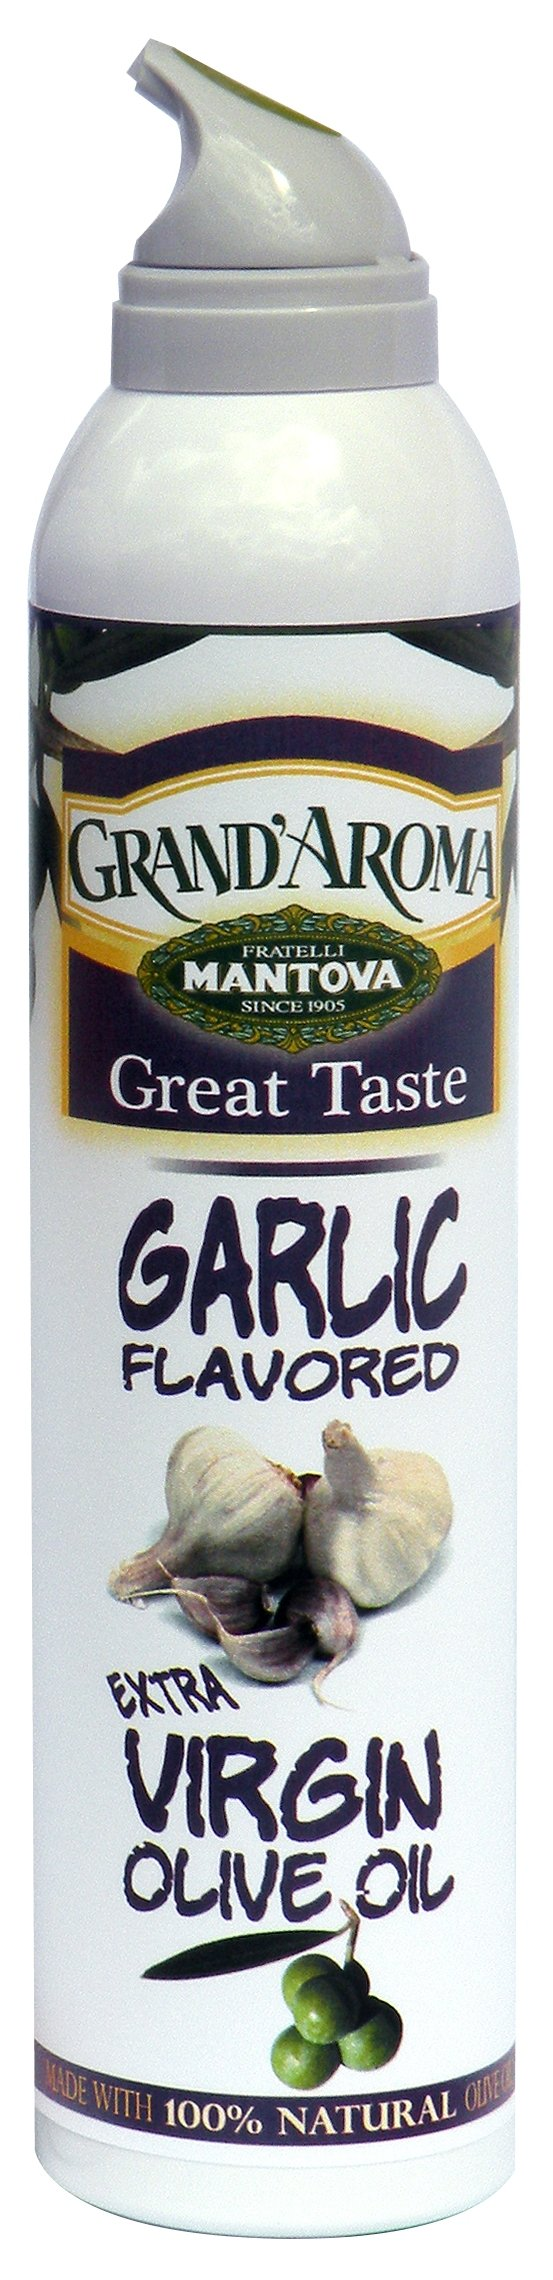 Mantova Extra Virgin Olive Oil Spray Garlic Flavored 8 oz. Spray Bottle - Manage Oil Amount - Great For Salads & Cooking